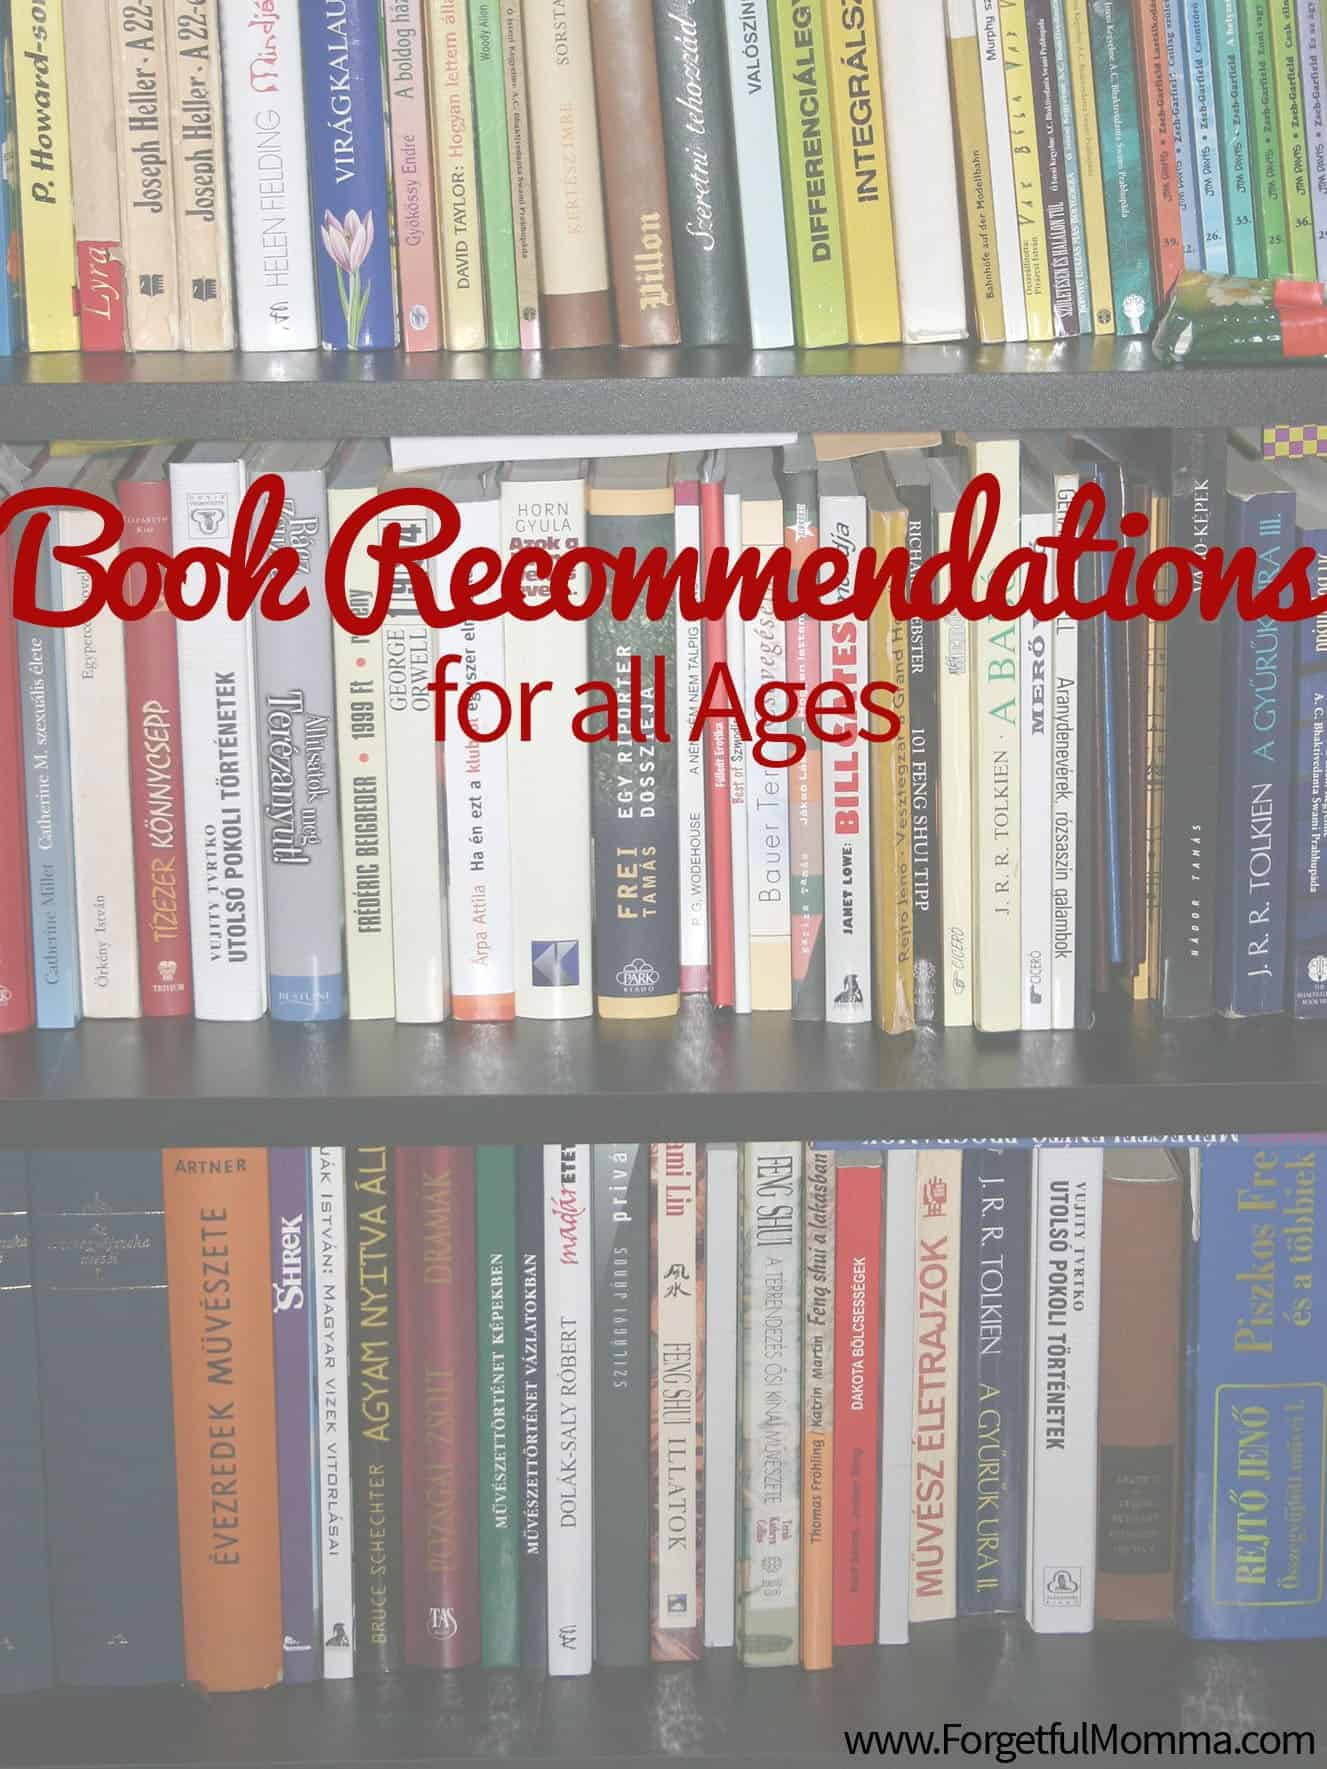 Book Recommendations for all Ages